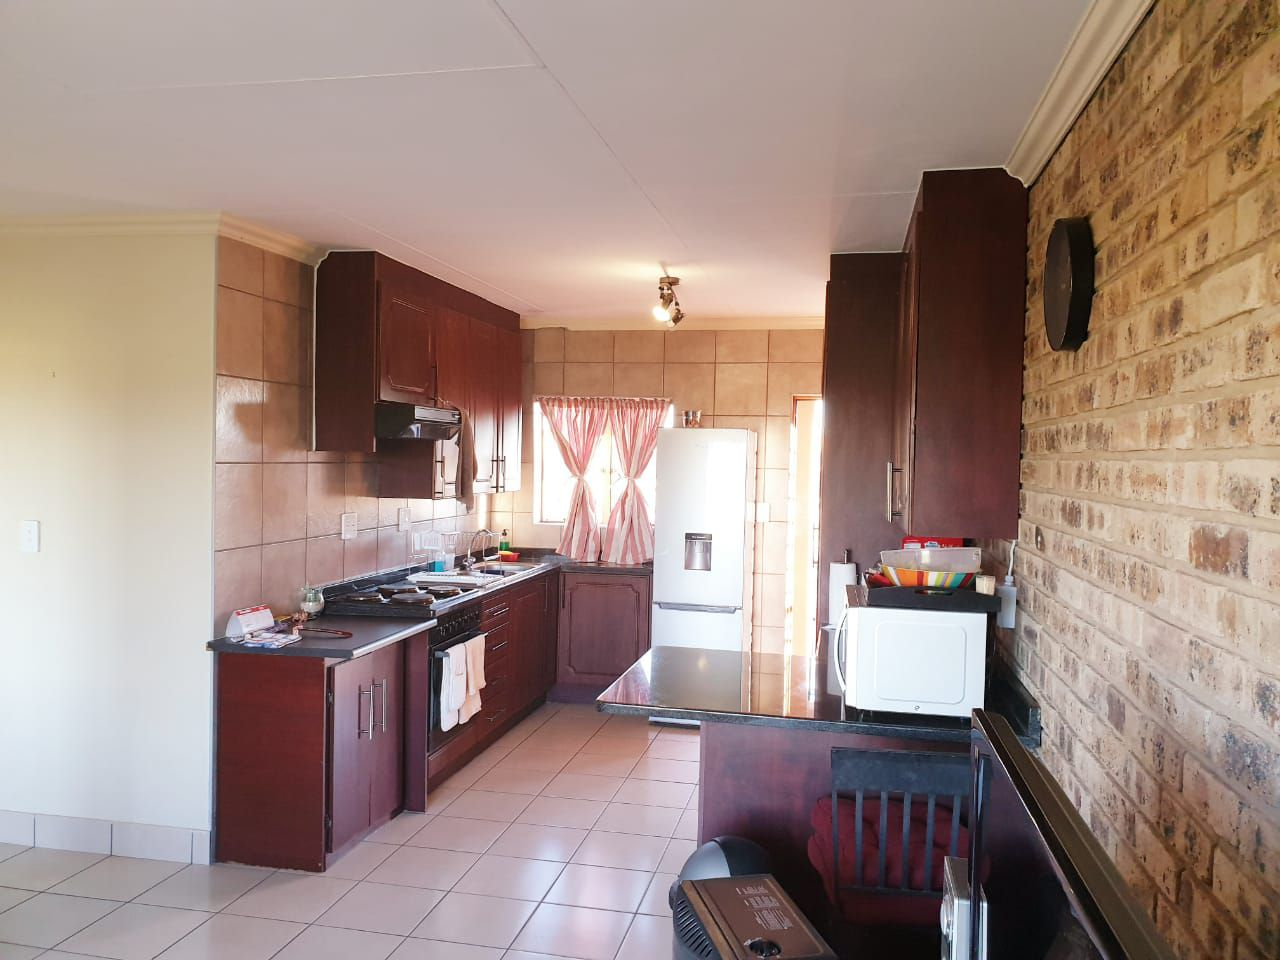 Apartment in Bailliepark - WhatsApp Image 2019-06-13 at 16.59.42.jpeg